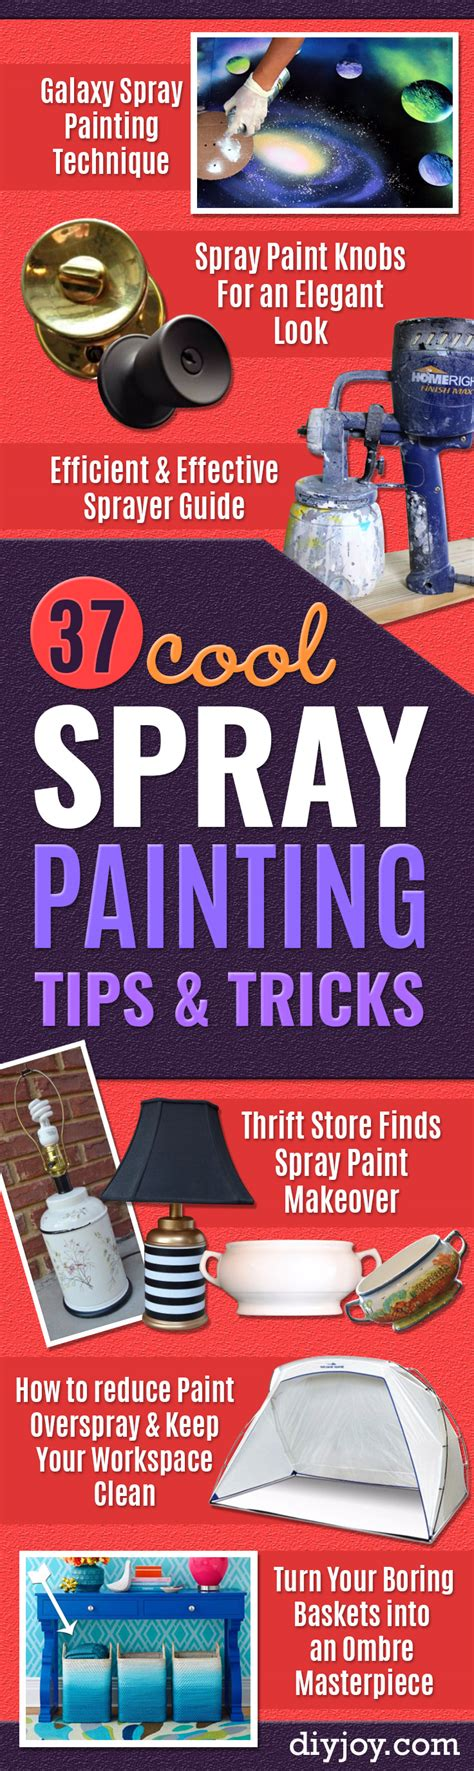 37 spray painting tips from the pros diy